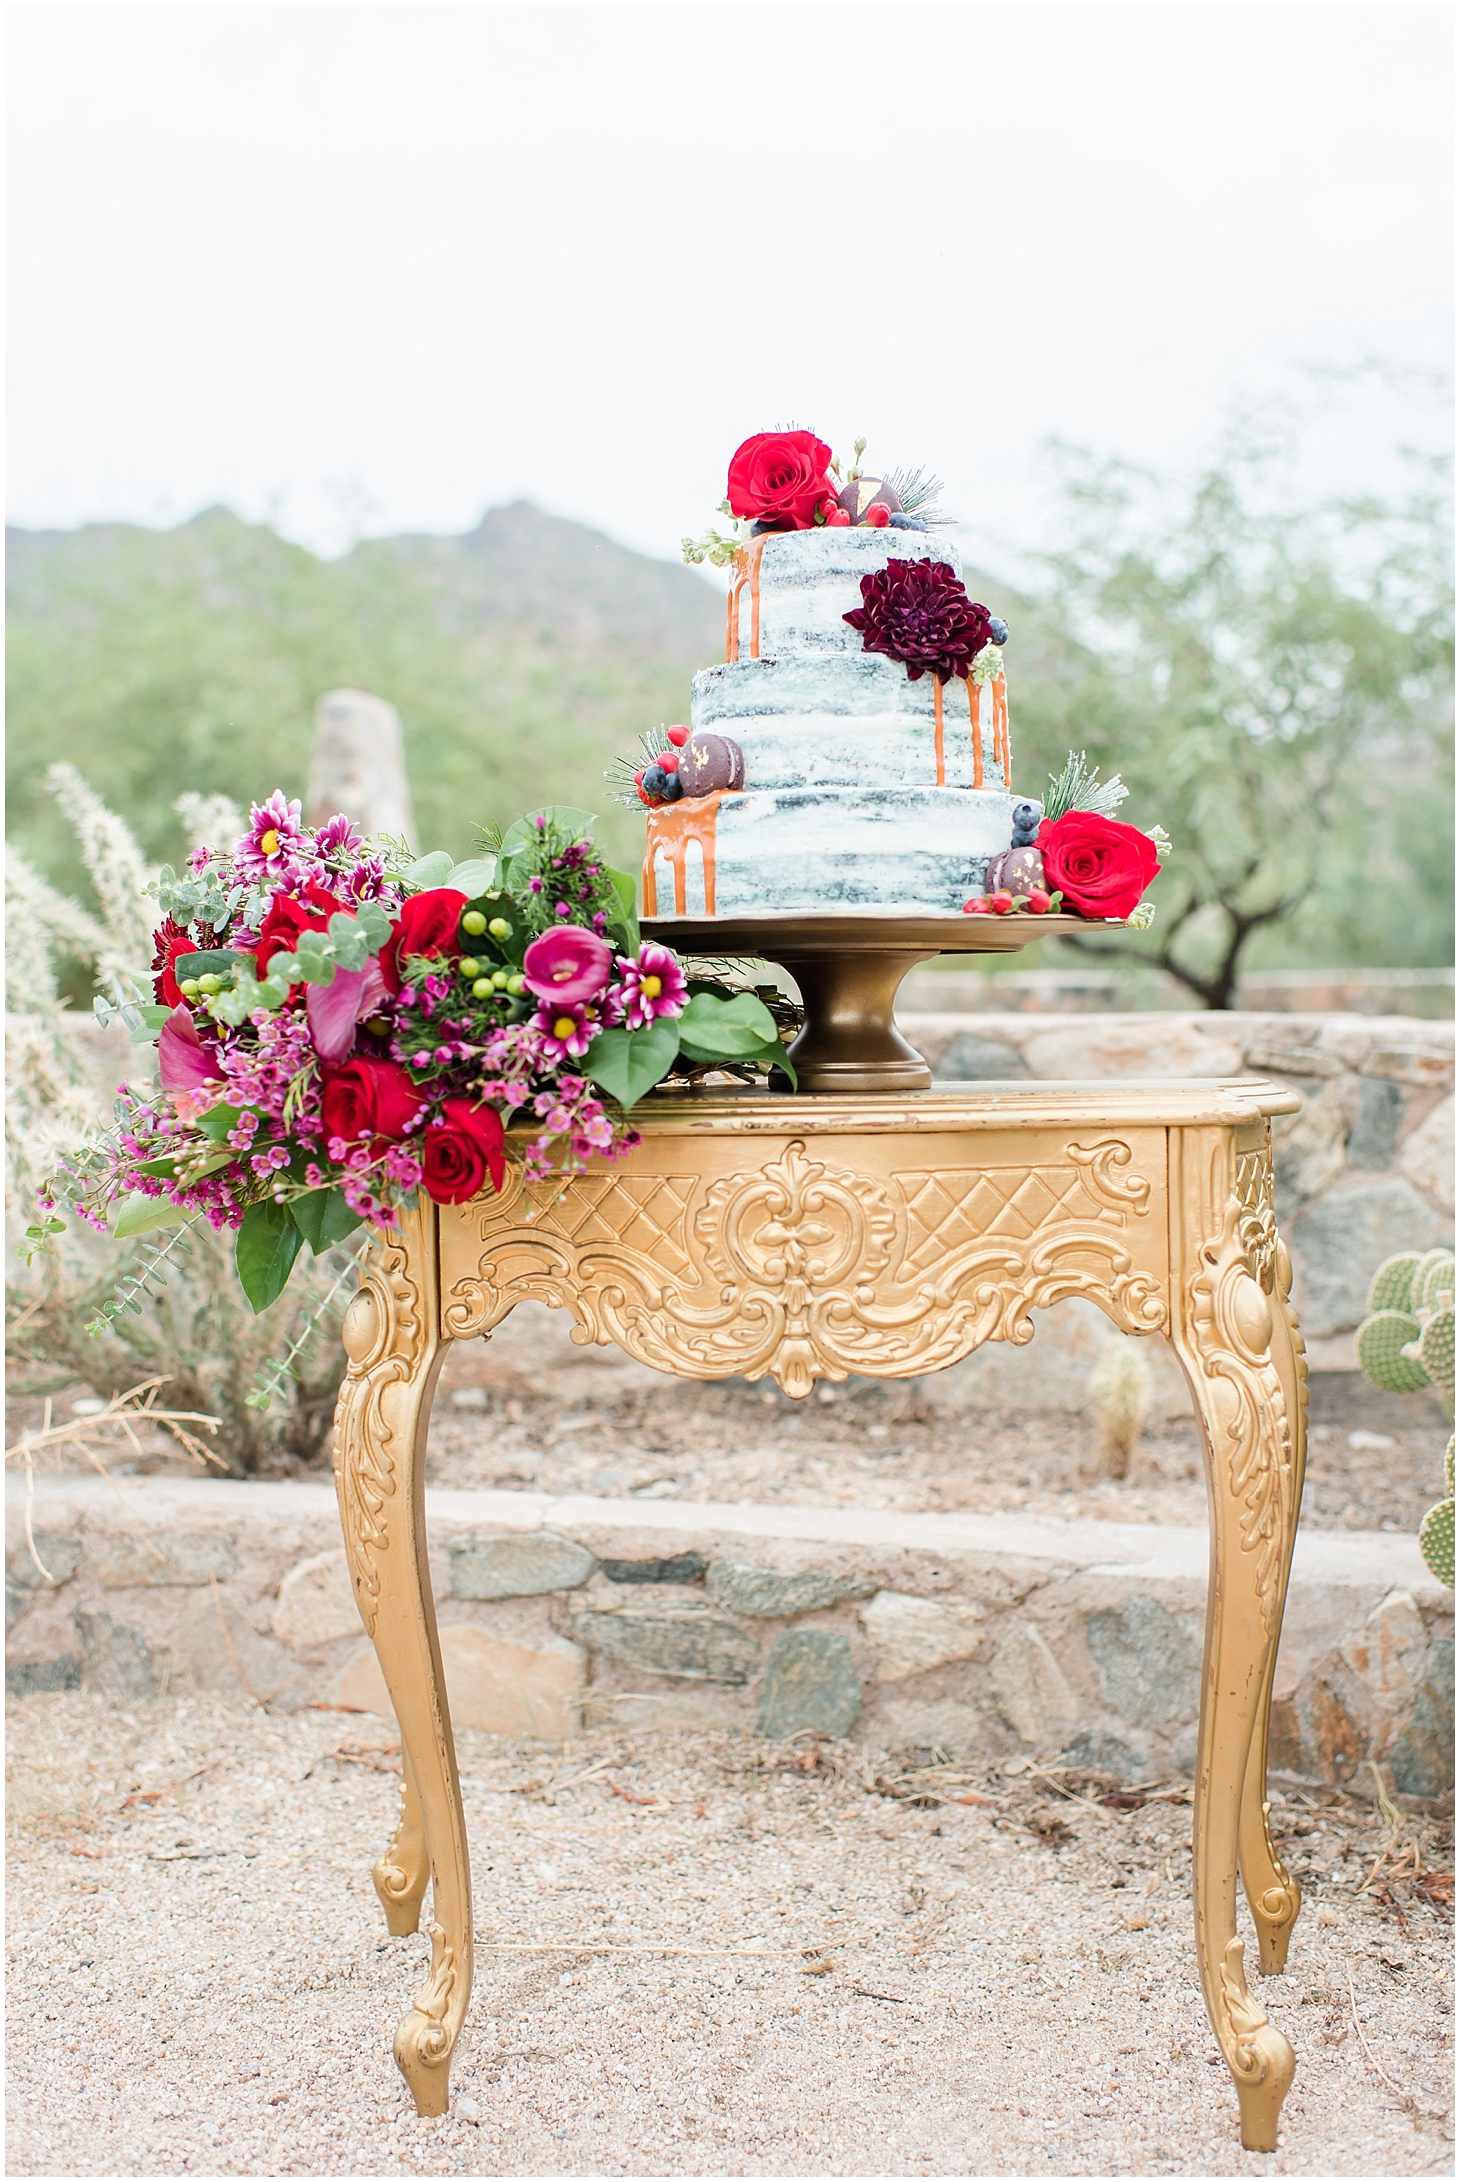 Amazing wedding cake made by Antigo Cakes displayed on a table provided by Material Girls Weddings, and a vibrant bouquet! Photos taken by Phoenix wedding photographer, Jade Min Photography.